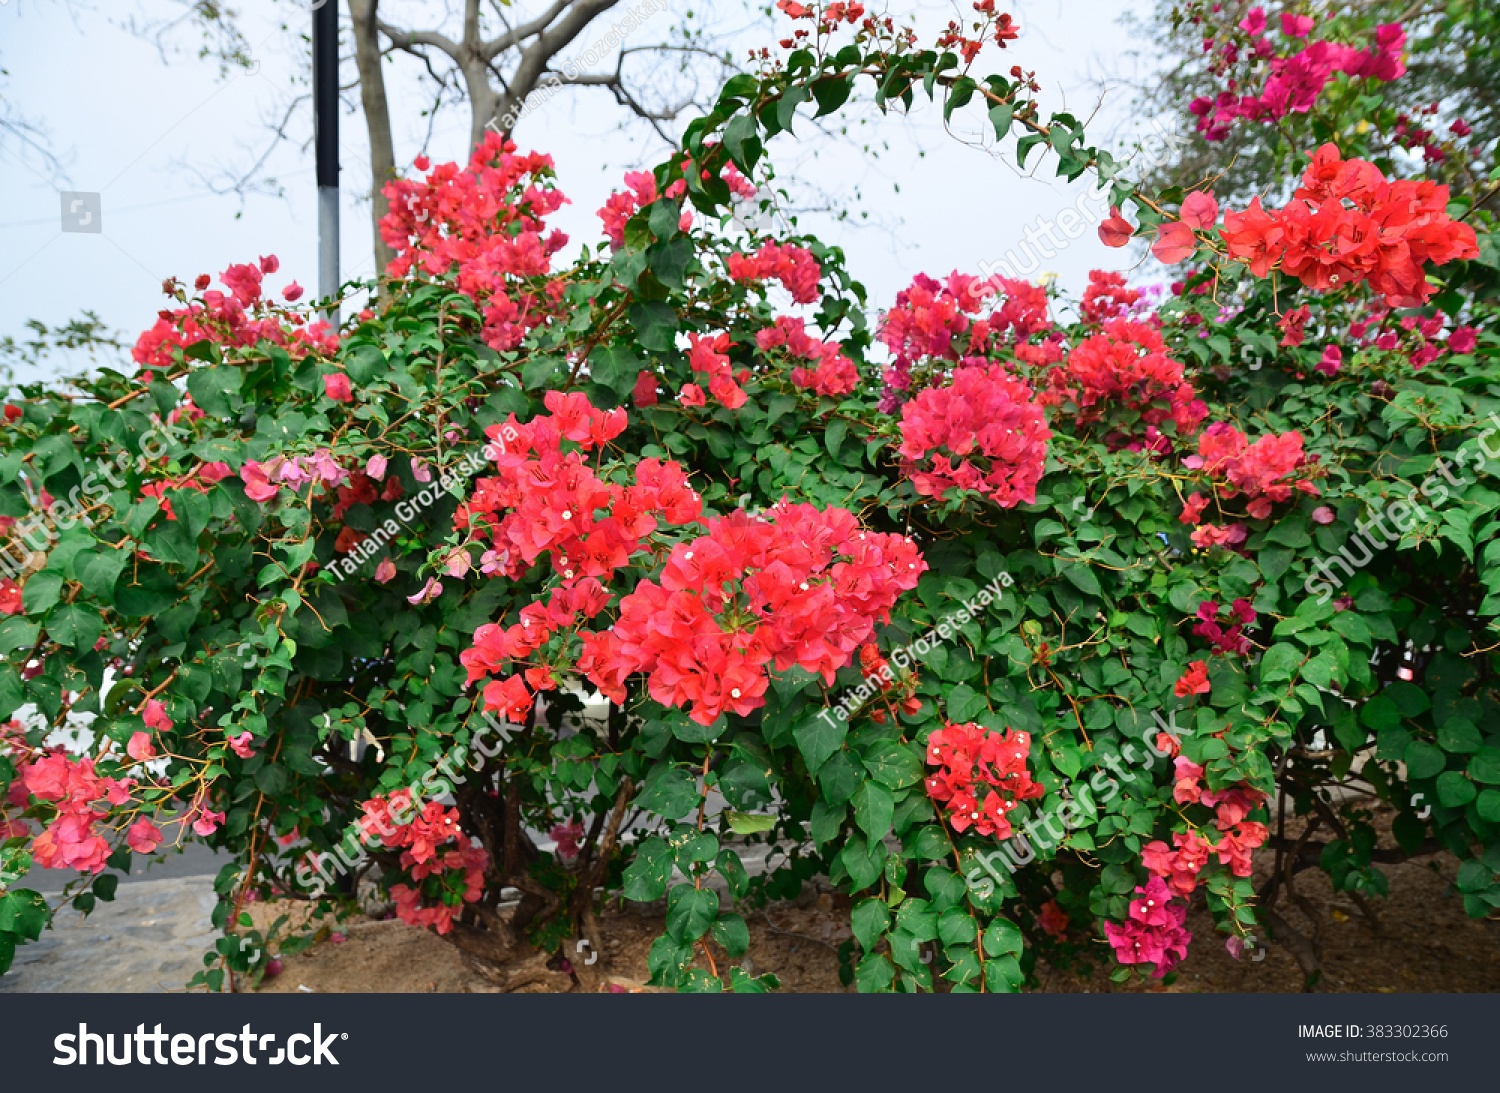 Flower Red Bougainvillea Nong Nooch Botanical Stock Photo (Royalty ...